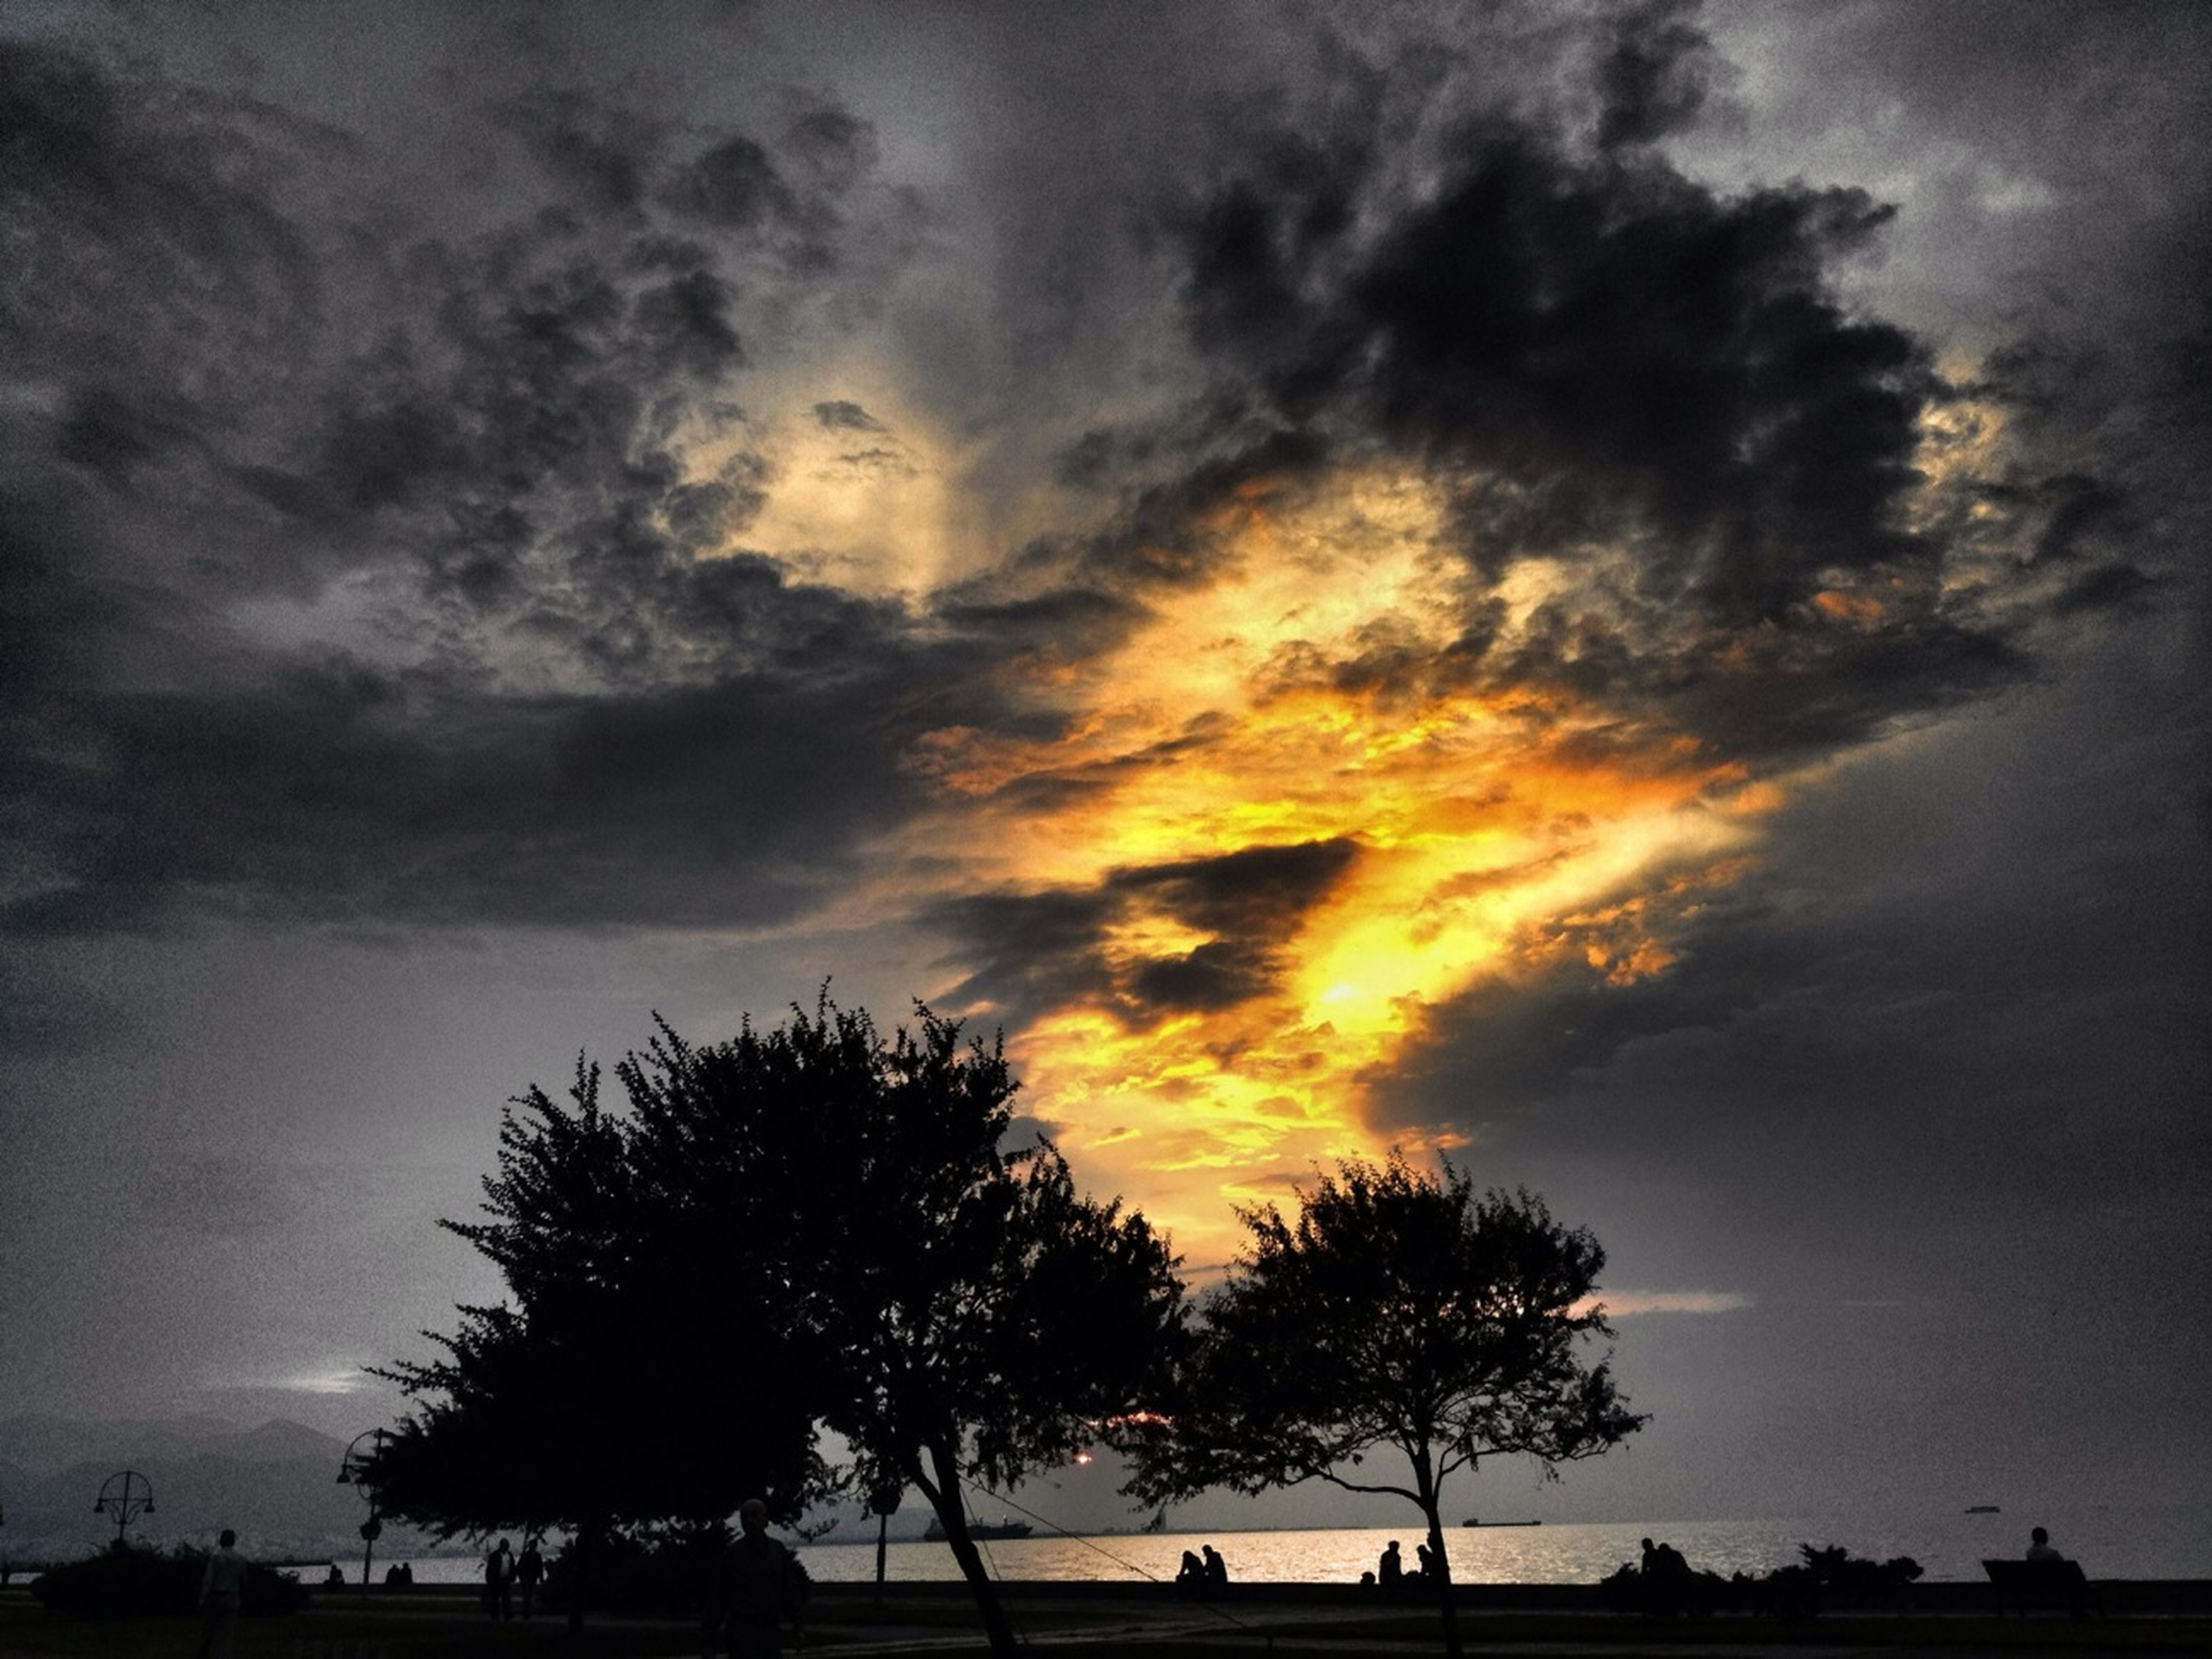 silhouette, sky, tree, sunset, cloud - sky, tranquility, tranquil scene, scenics, beauty in nature, cloudy, nature, cloud, dramatic sky, idyllic, dusk, weather, landscape, outdoors, overcast, low angle view